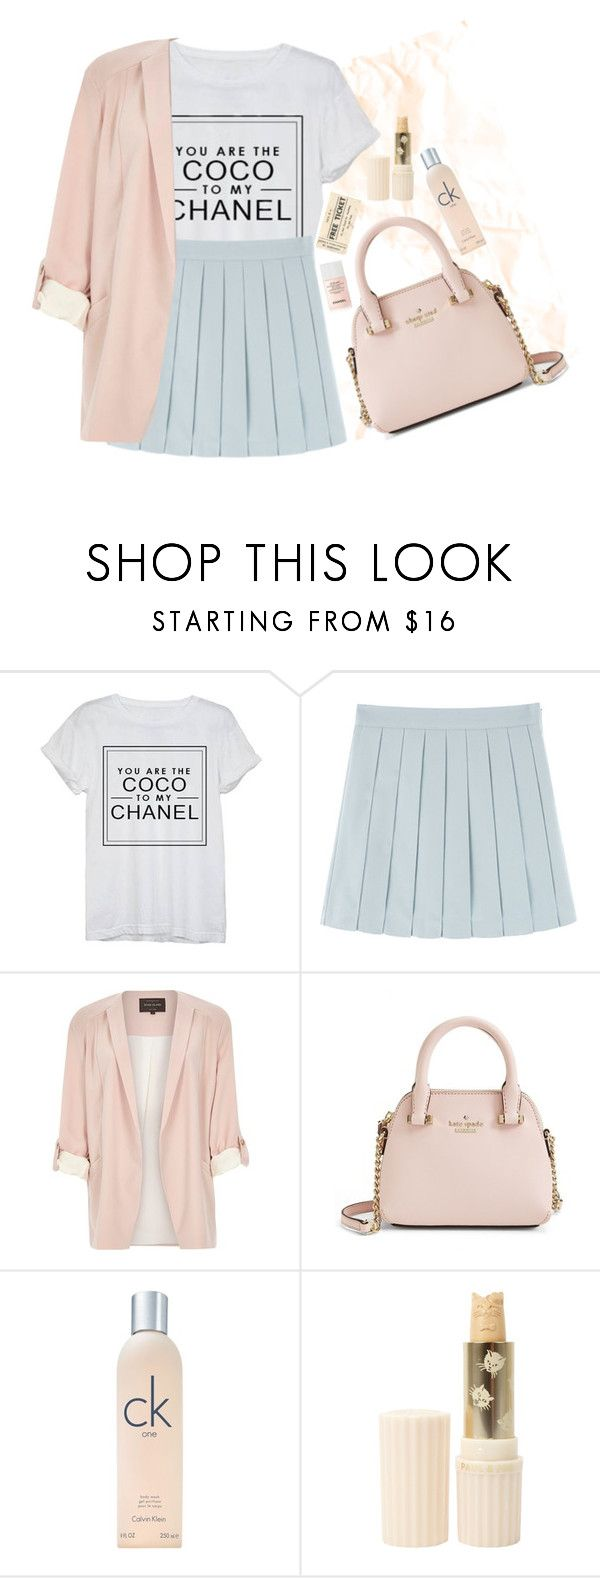 """""""Pleated skirt"""" by tilly-bailey ❤ liked on Polyvore featuring Chanel, River Island, Kate Spade, Calvin Klein and Paul & Joe"""